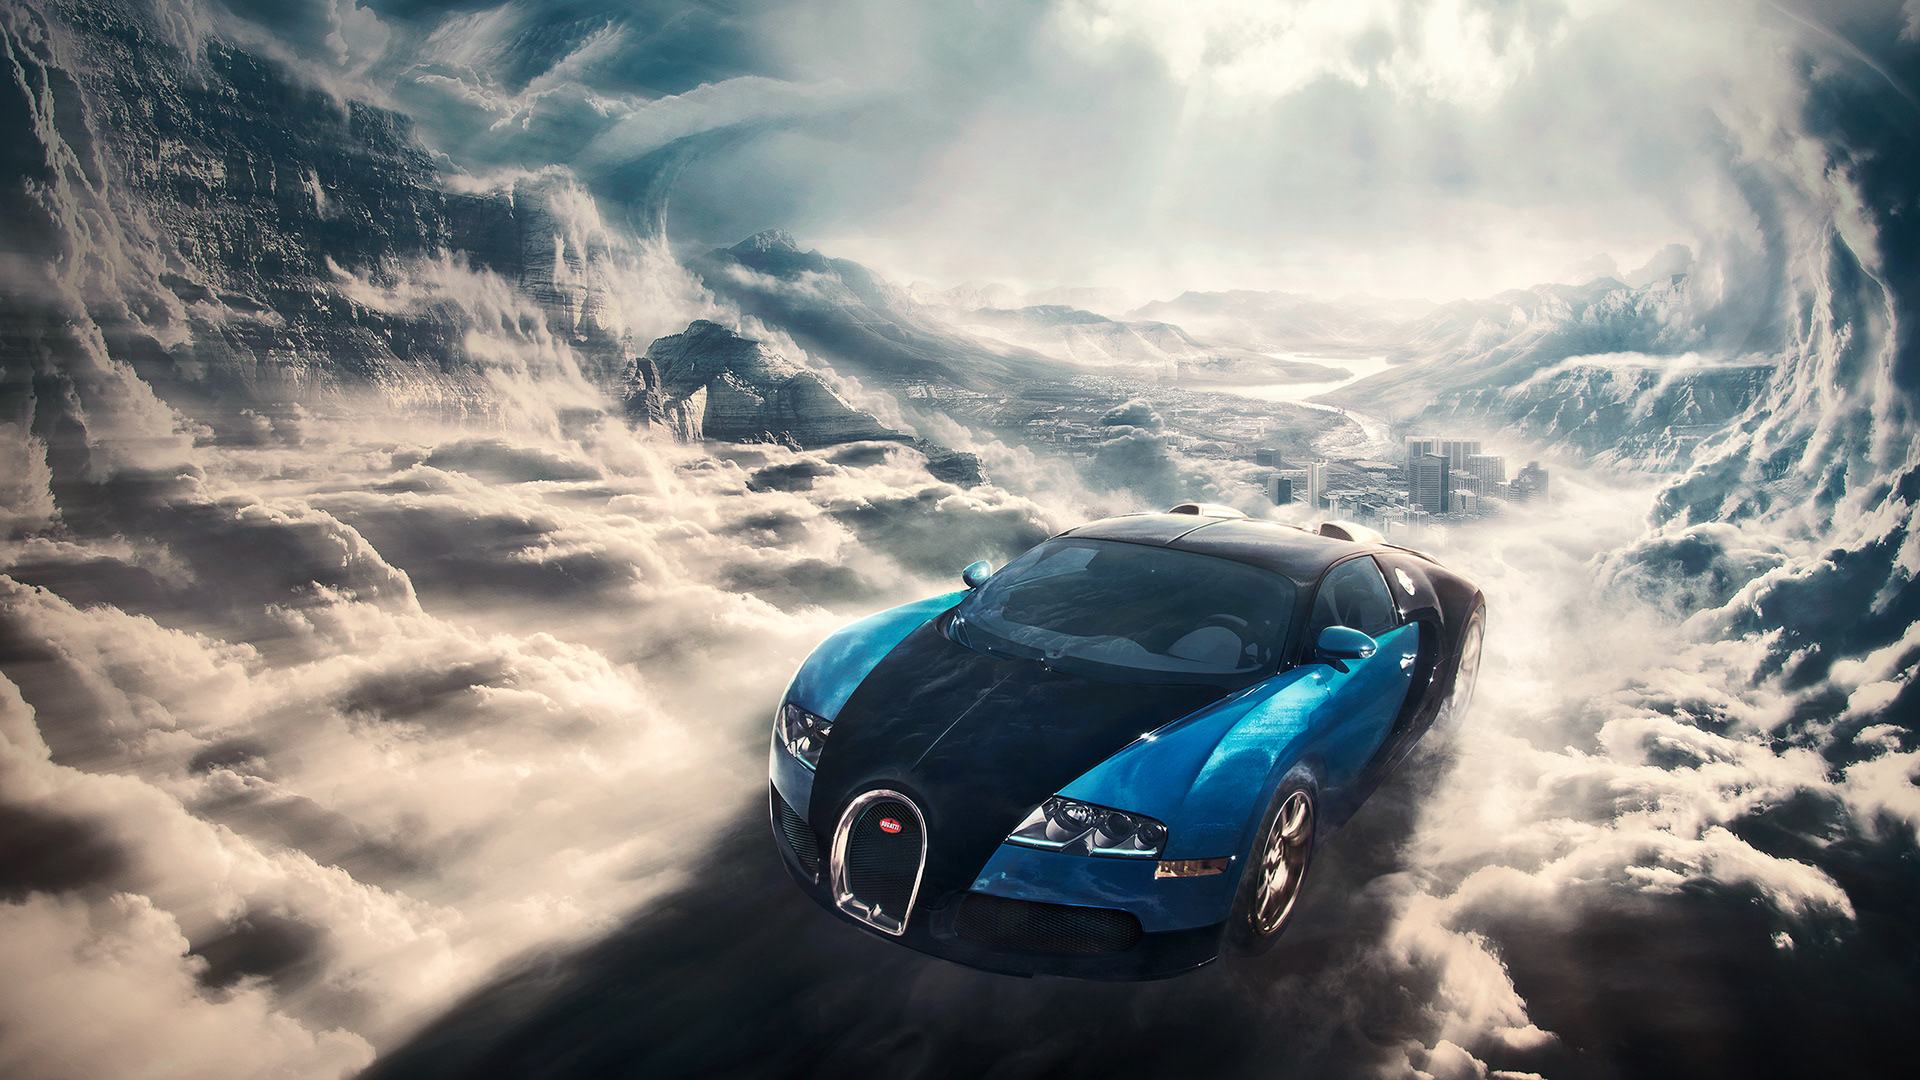 Bugatti Speed of Sound